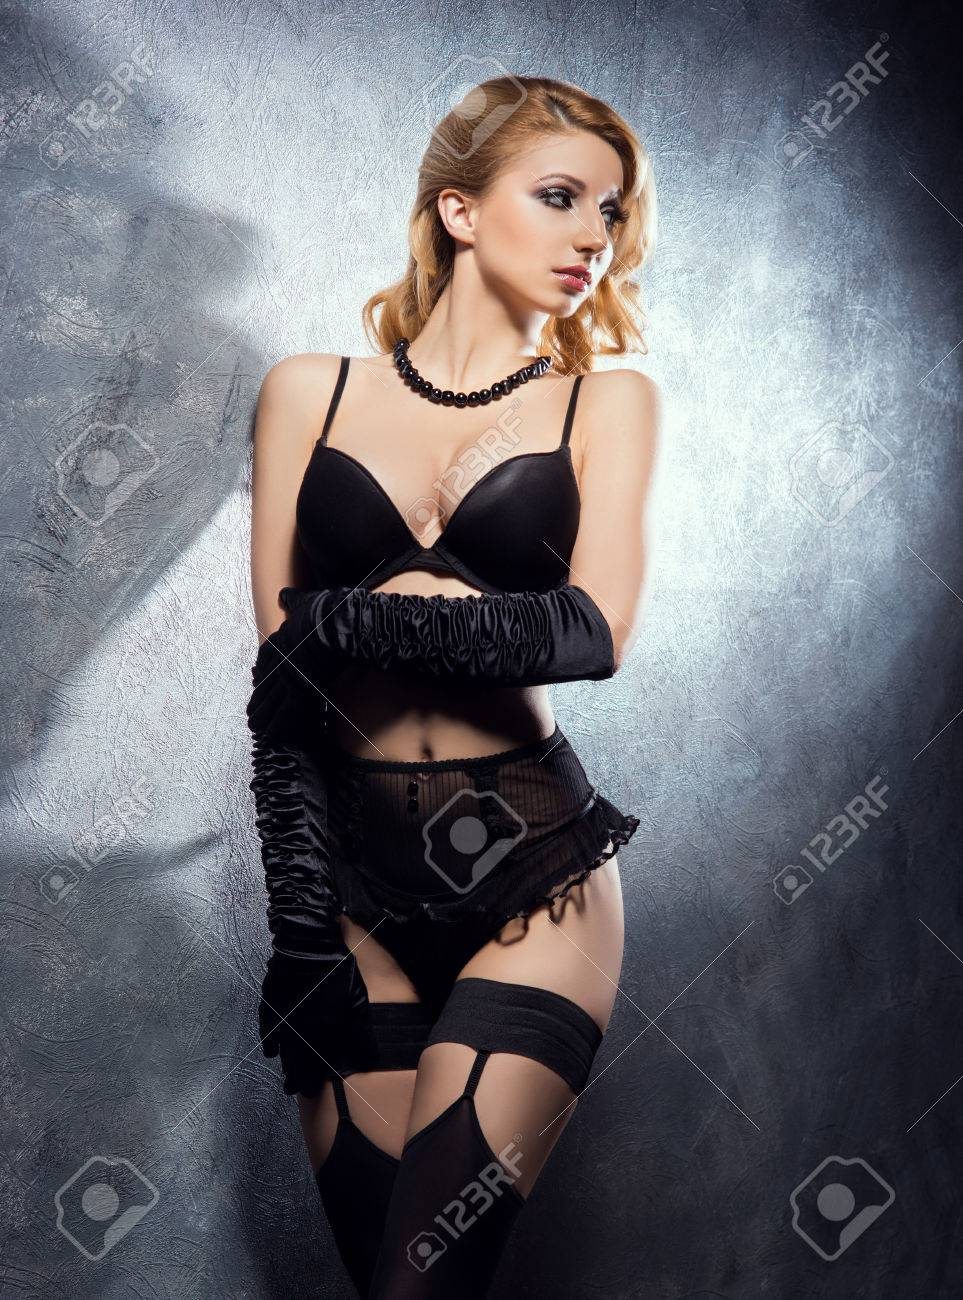 38360eaeb51 Stock Photo - Young and beautiful cabaret dancer in sexy vintage lingerie